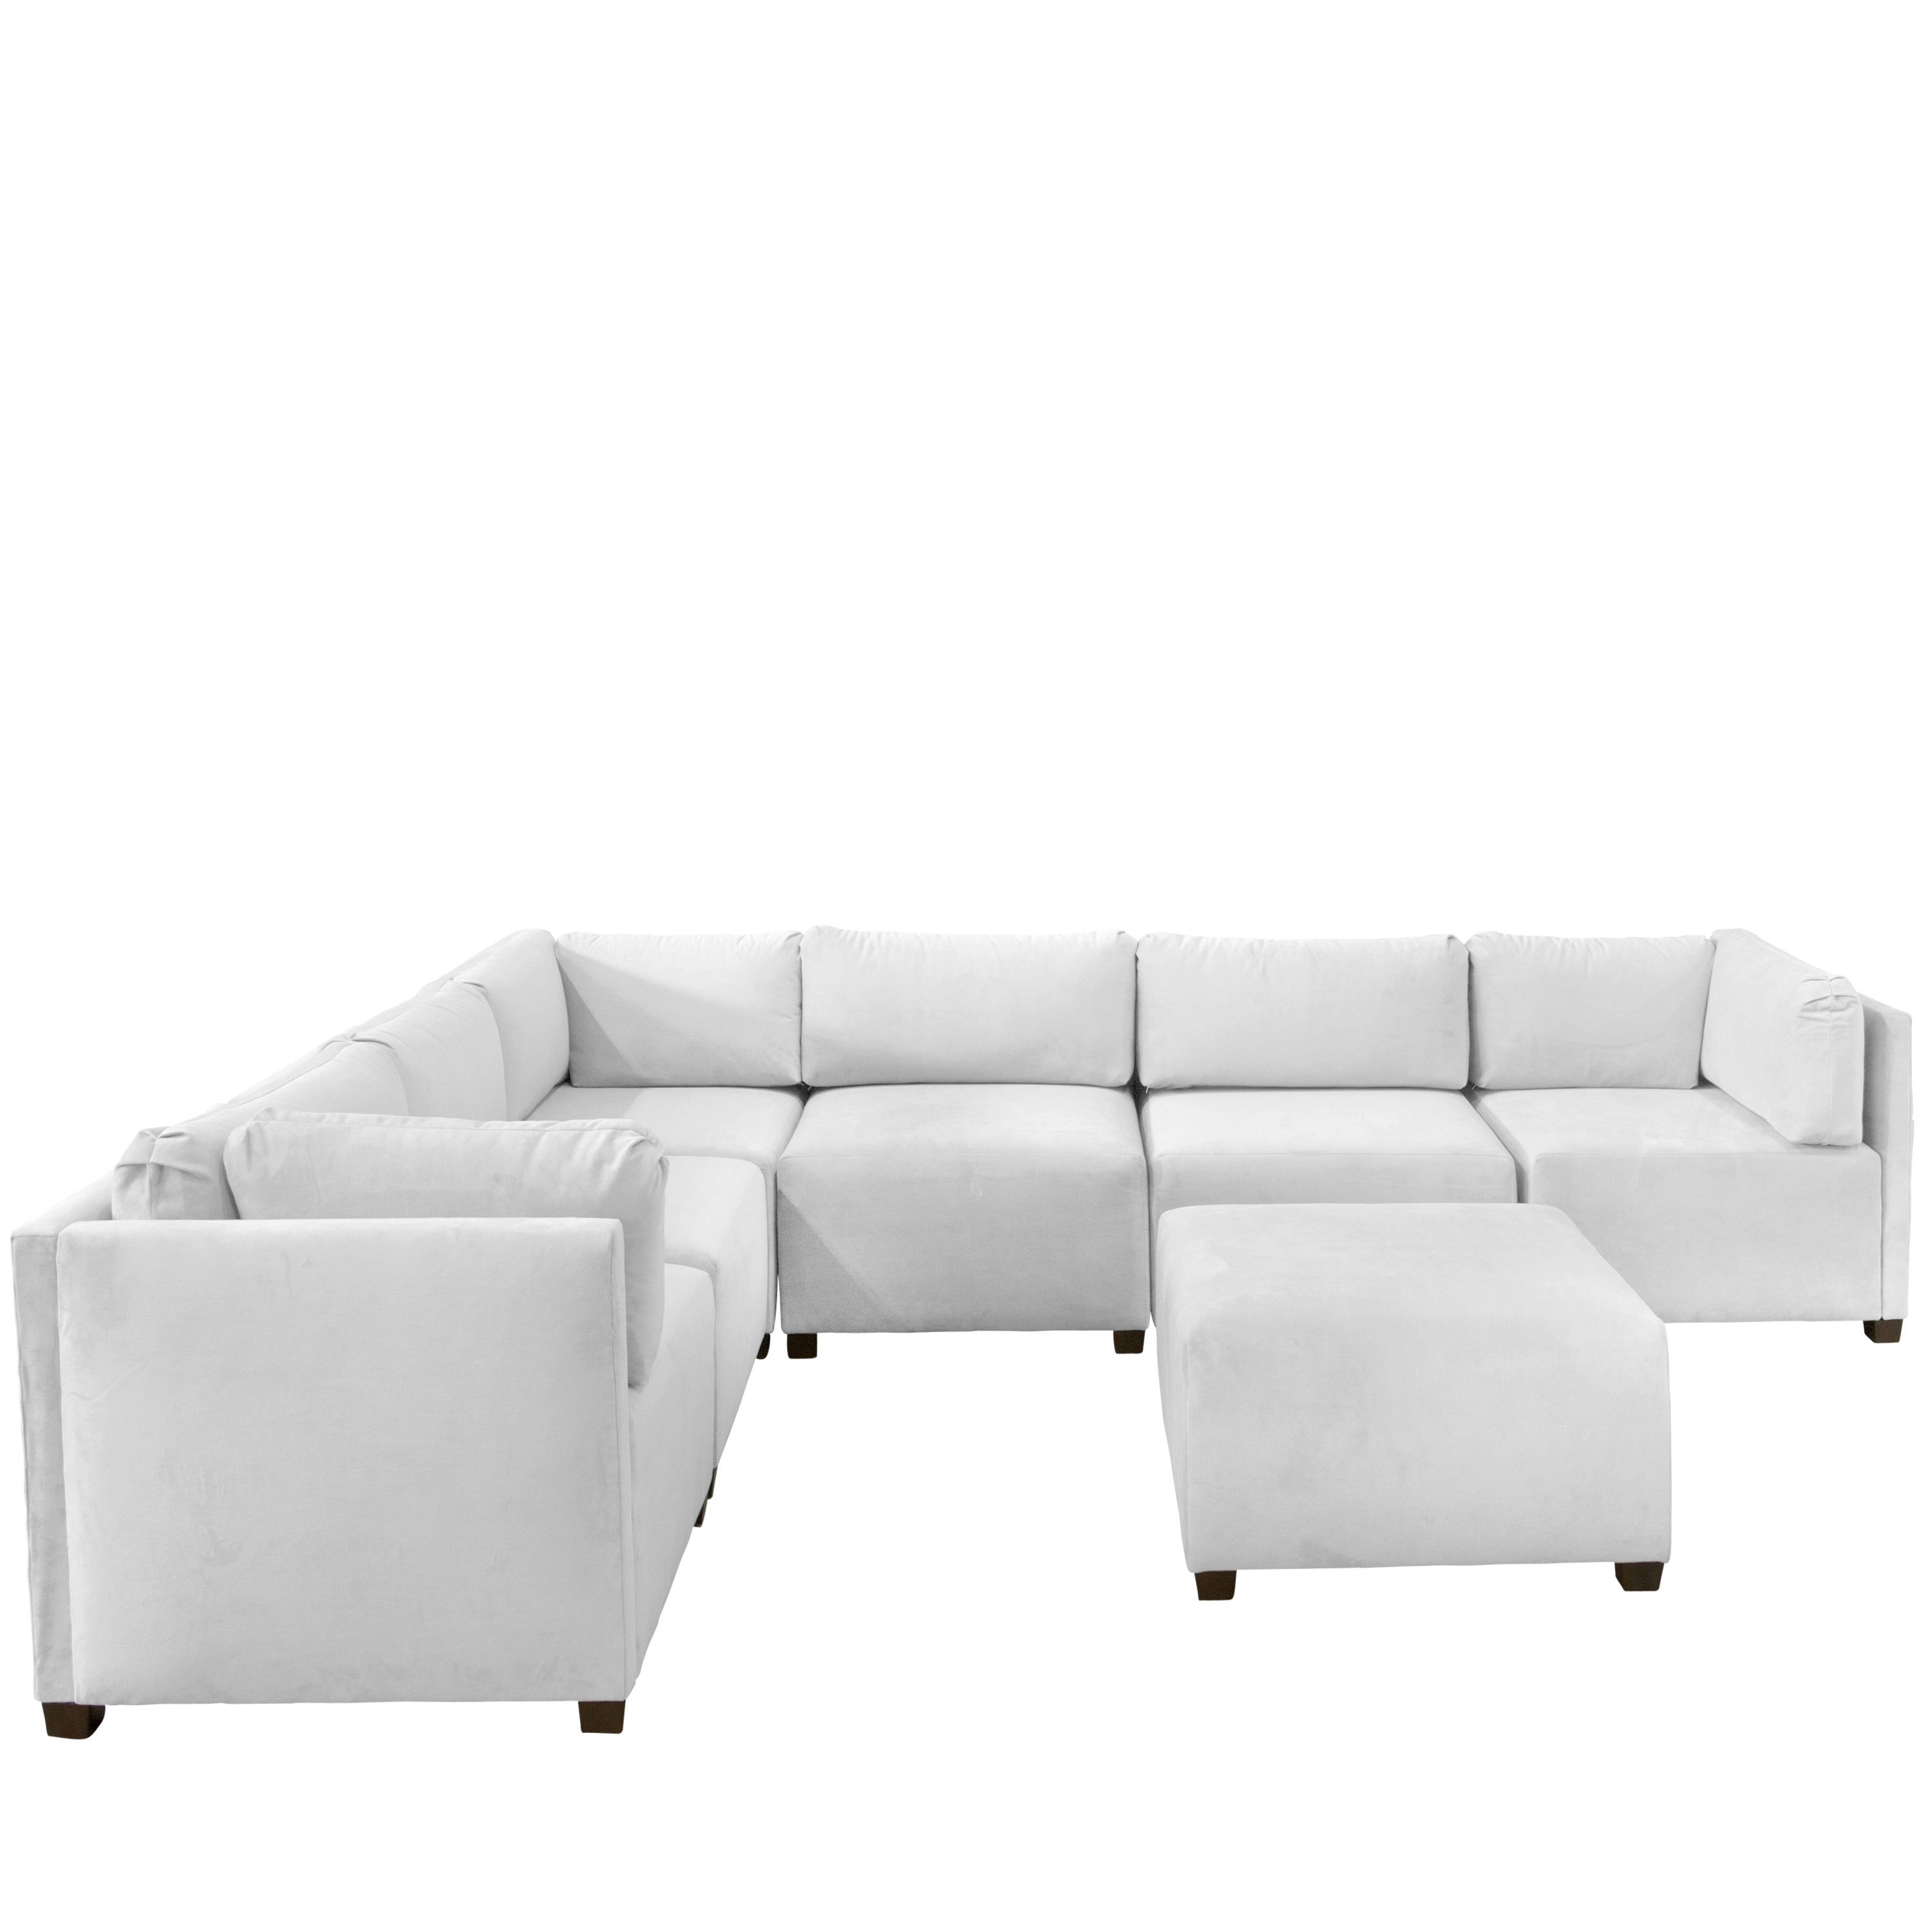 Shop Skyline Furniture Velvet White Sectional Sofa Free Shipping